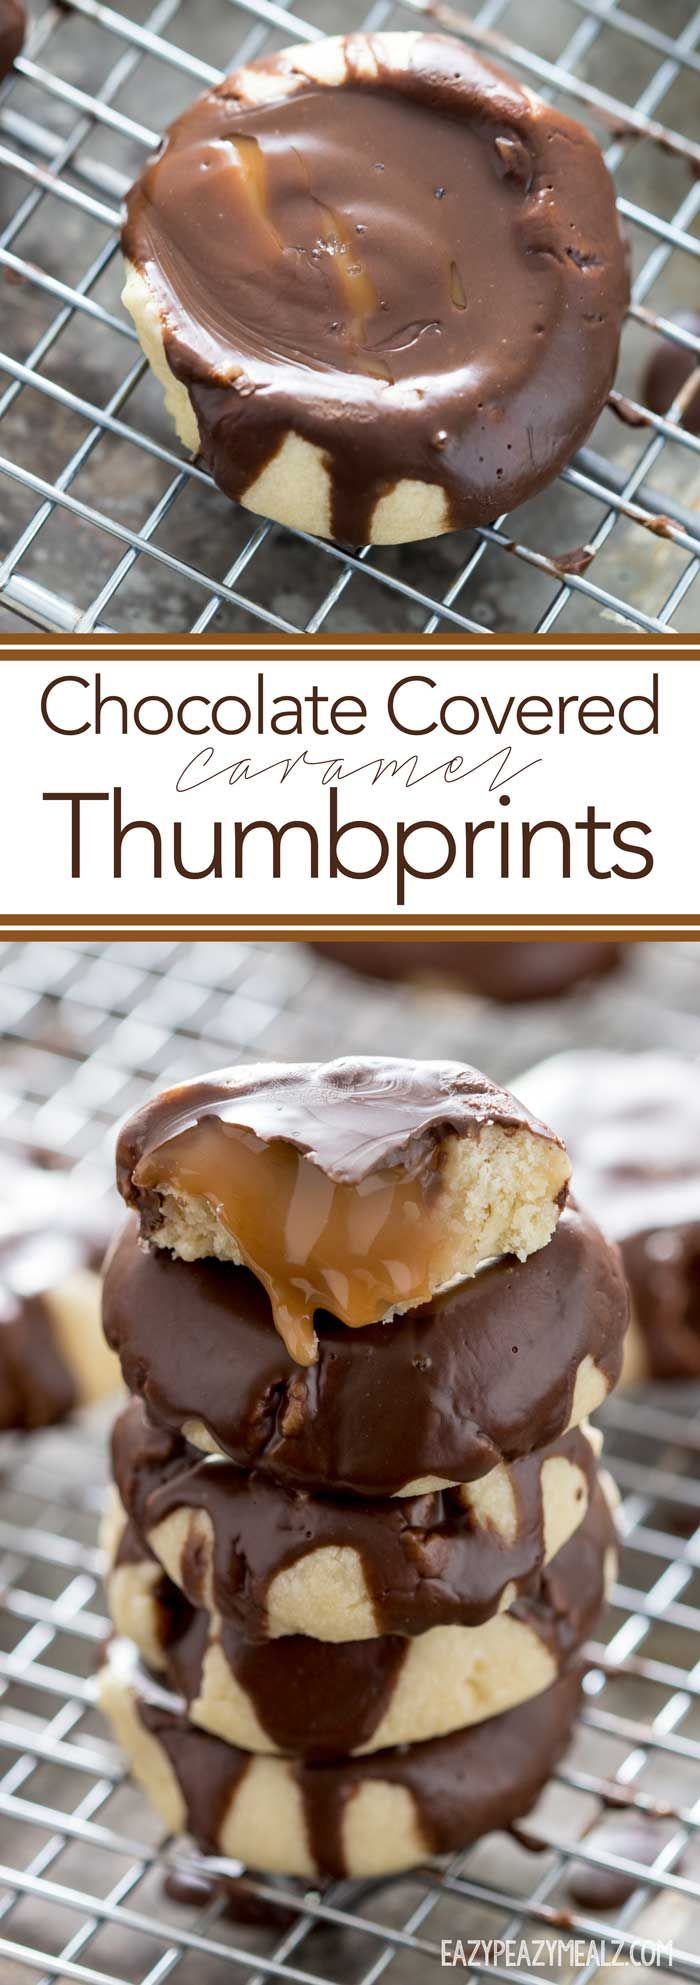 Chocolate Covered Caramel Thumbprints: A buttery cookie, filled with caramel and covered in chocolate. SOOO good, and really easy too.